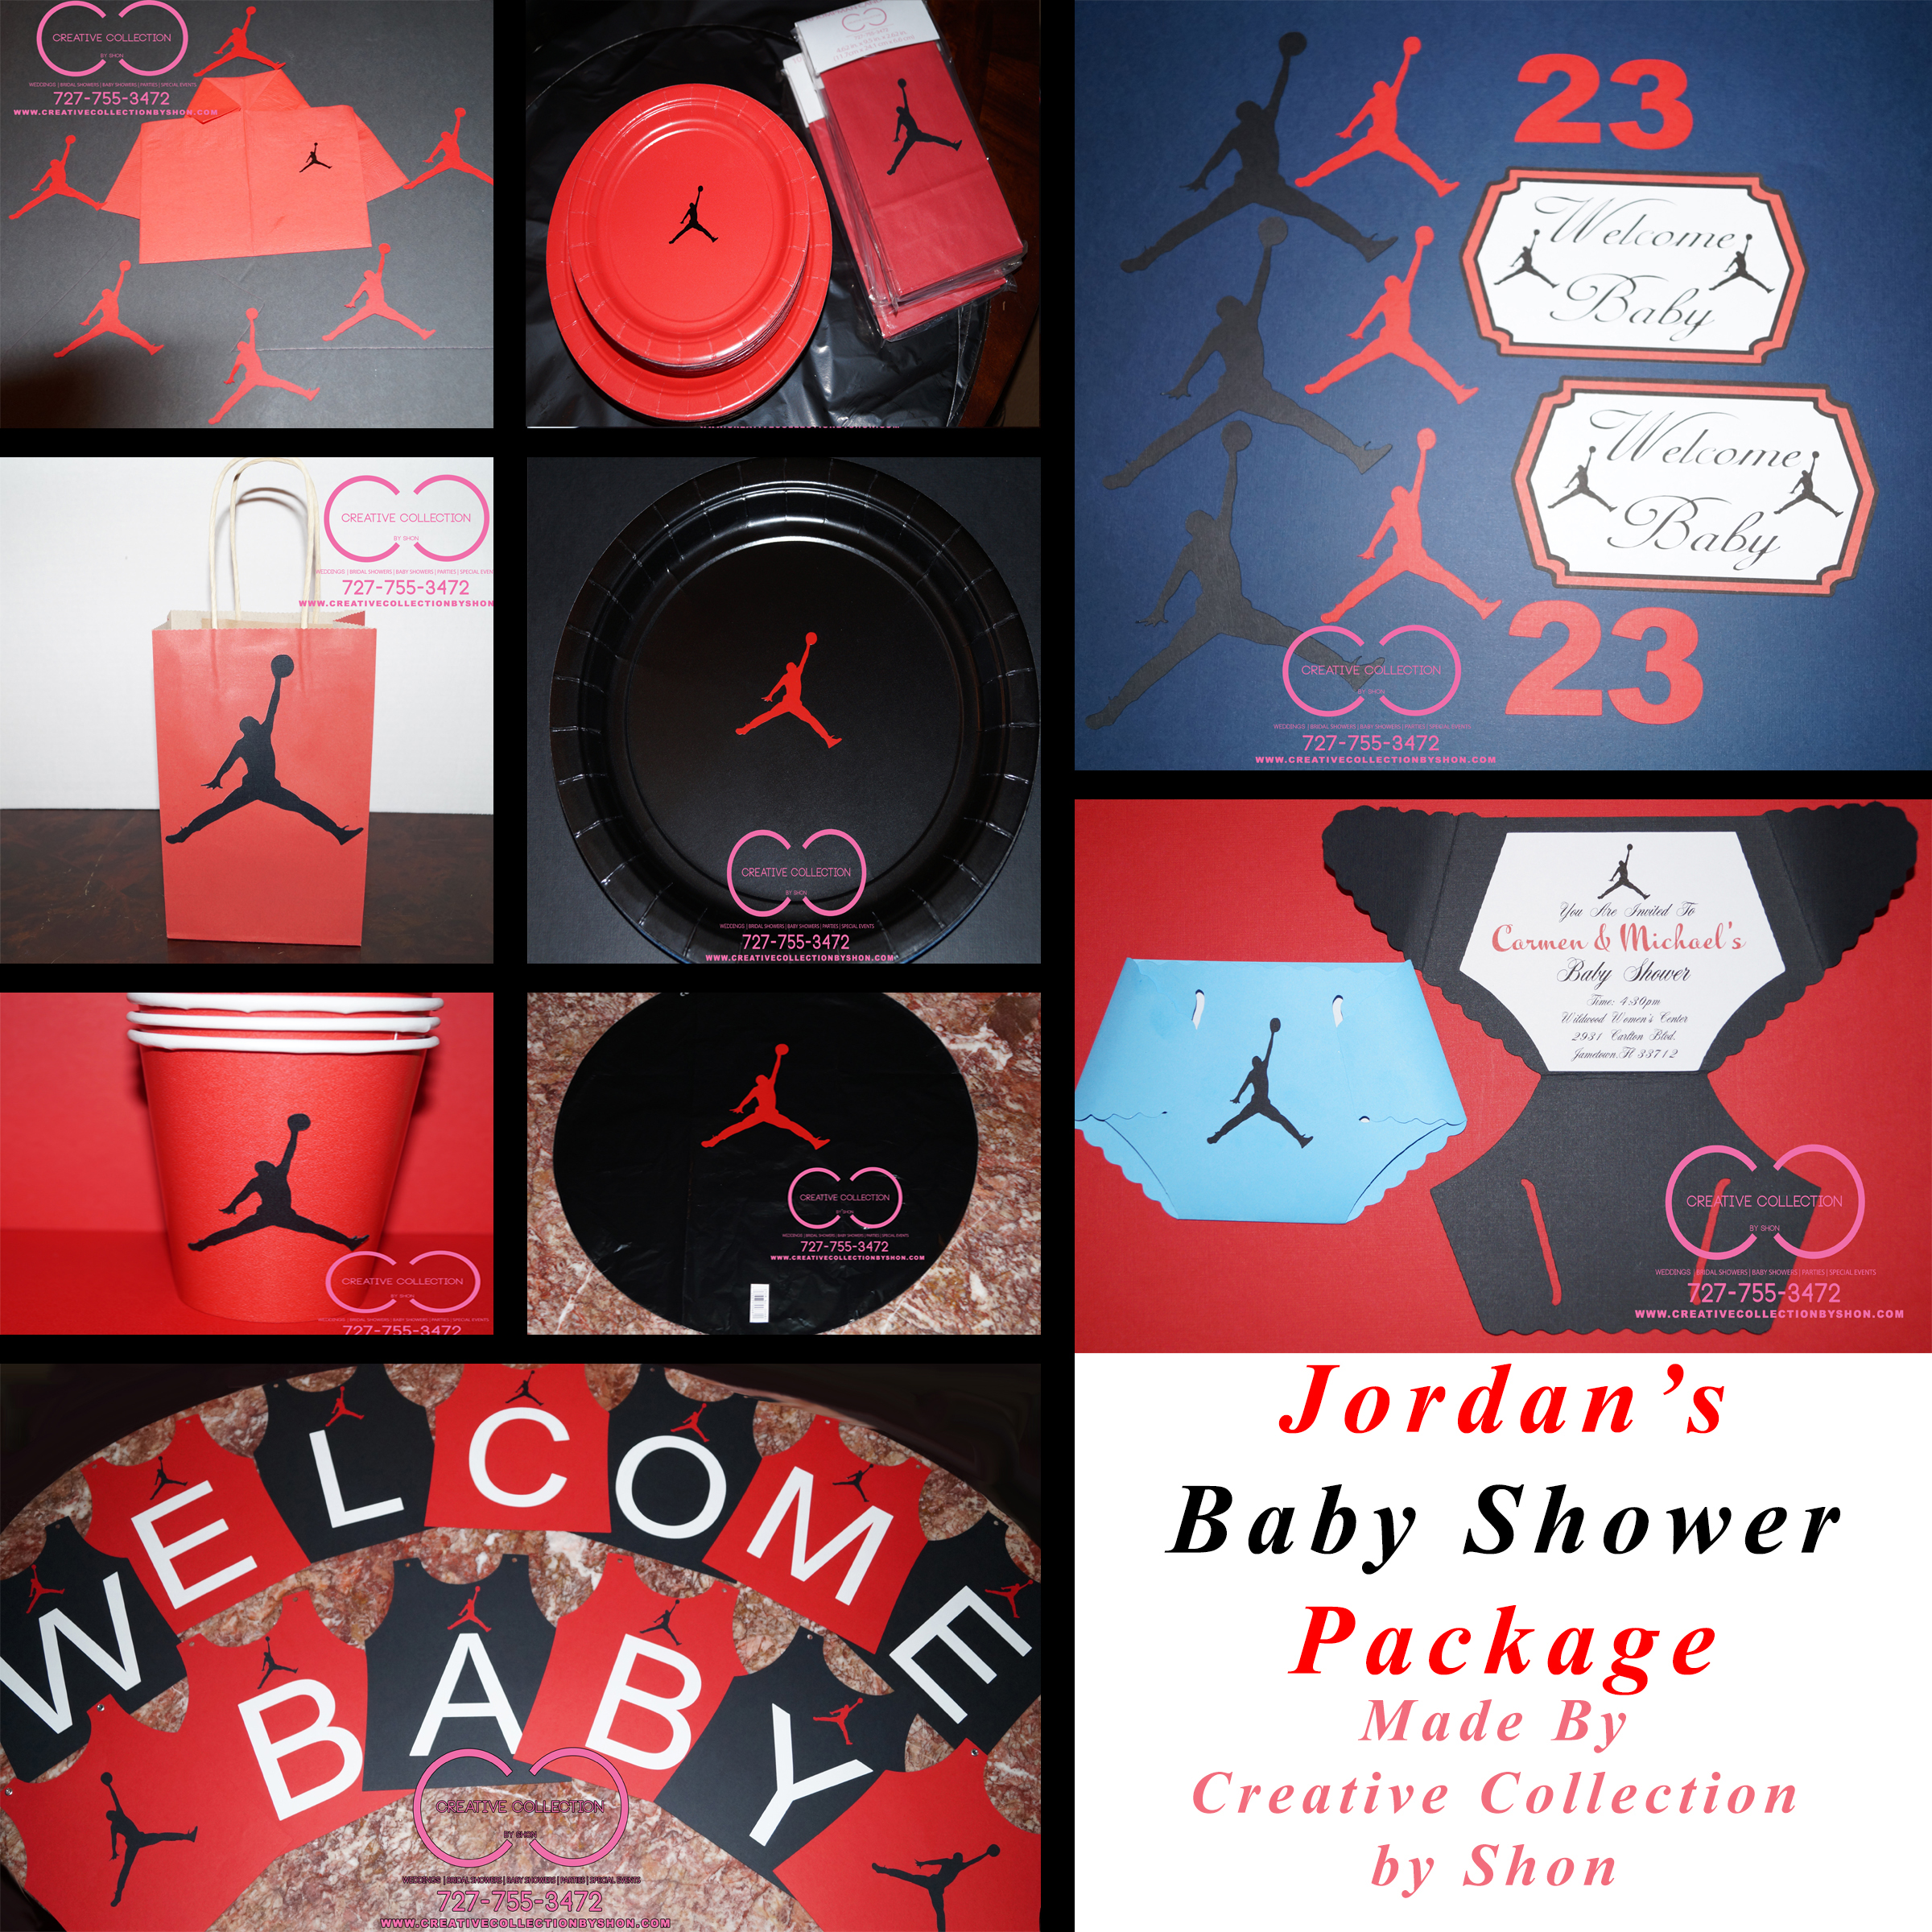 Jumpman Jordan Inspired Baby Shower Package Creative Collection